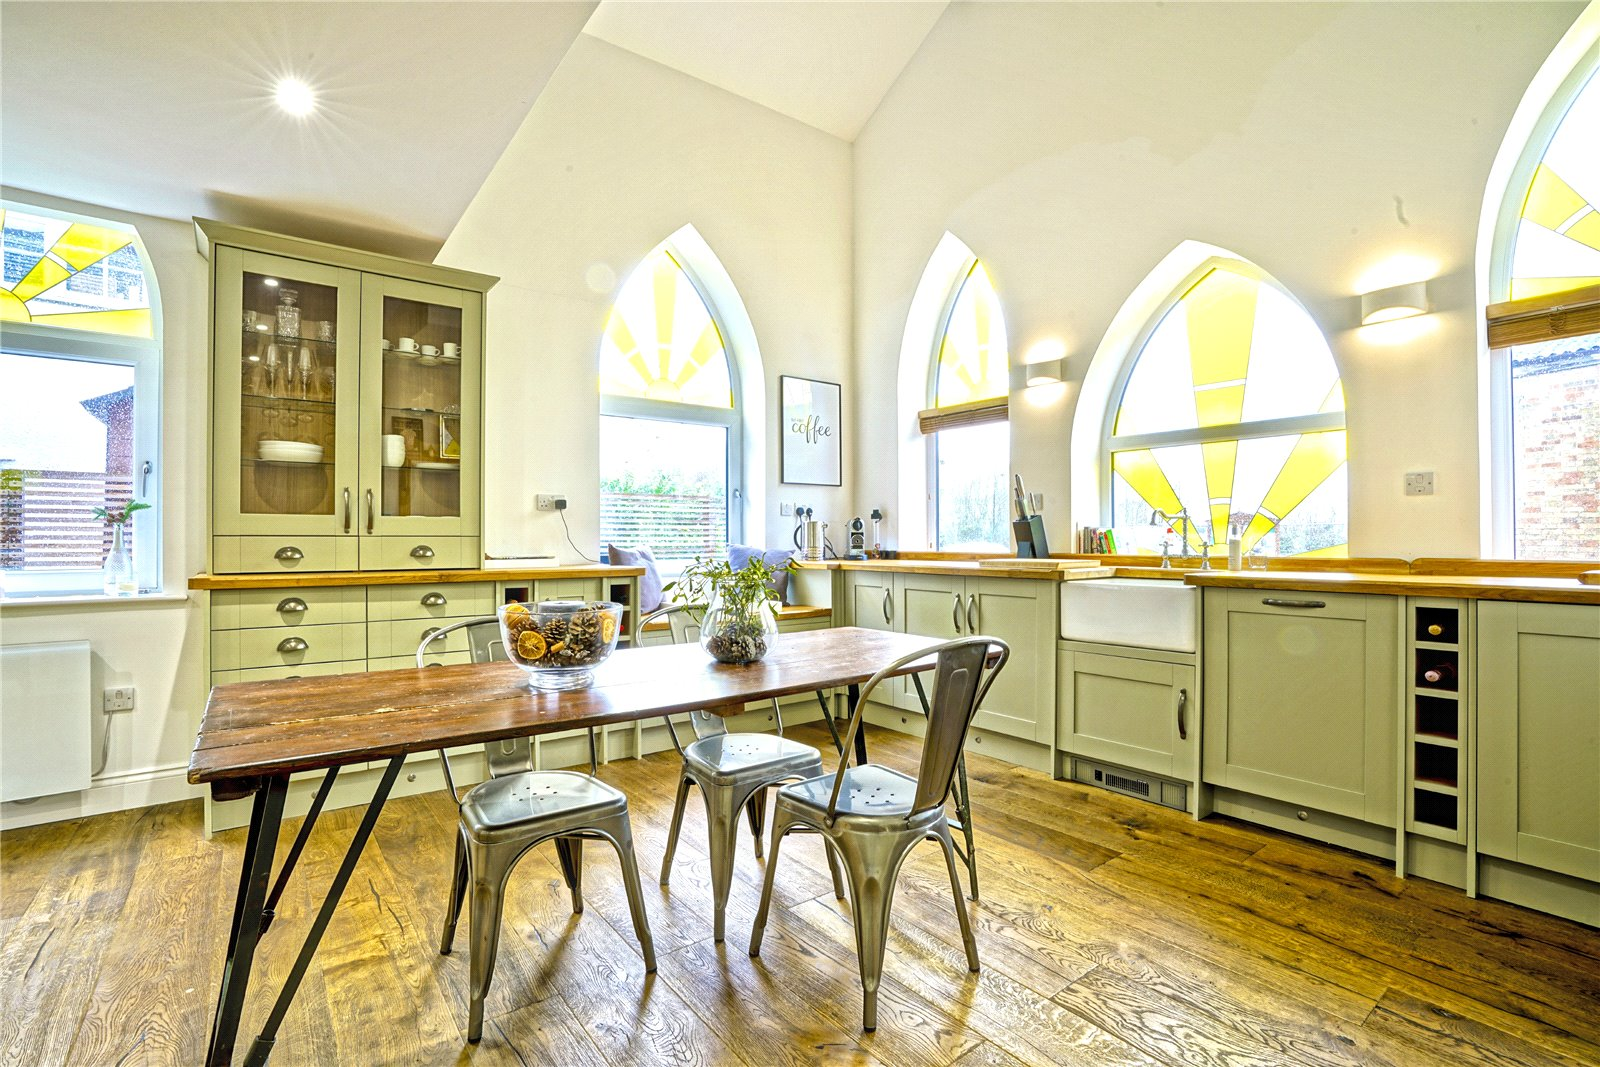 4 bed house for sale in Offord D'Arcy - Property Image 1